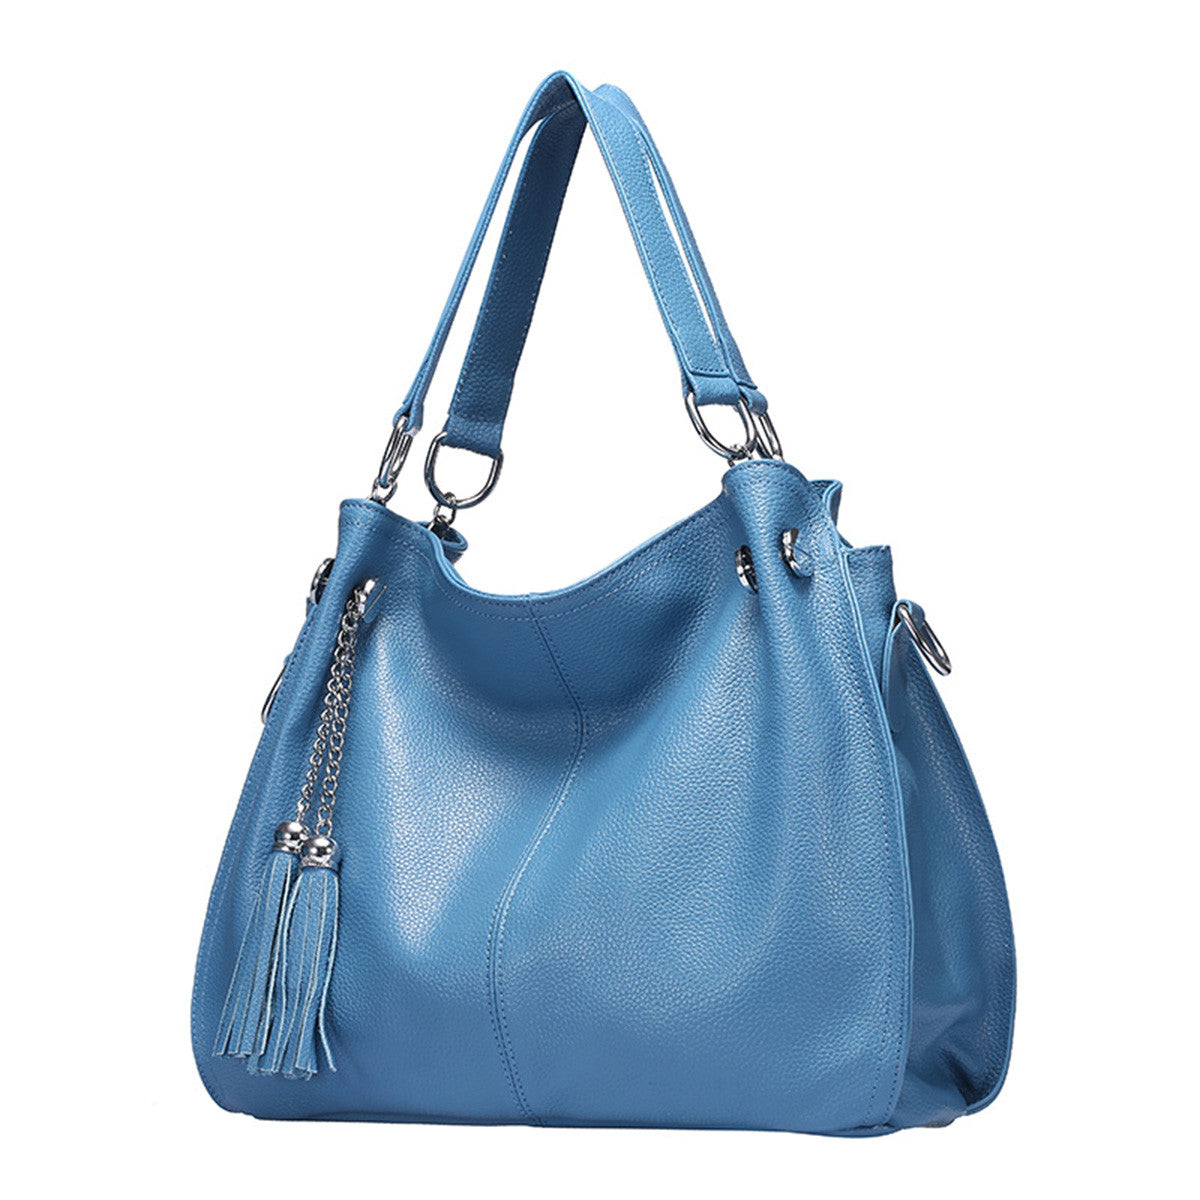 Women's Casual Handbag Large Crossbody Bag Exquisite Split Leather Shoulder Bag - Royal Loot